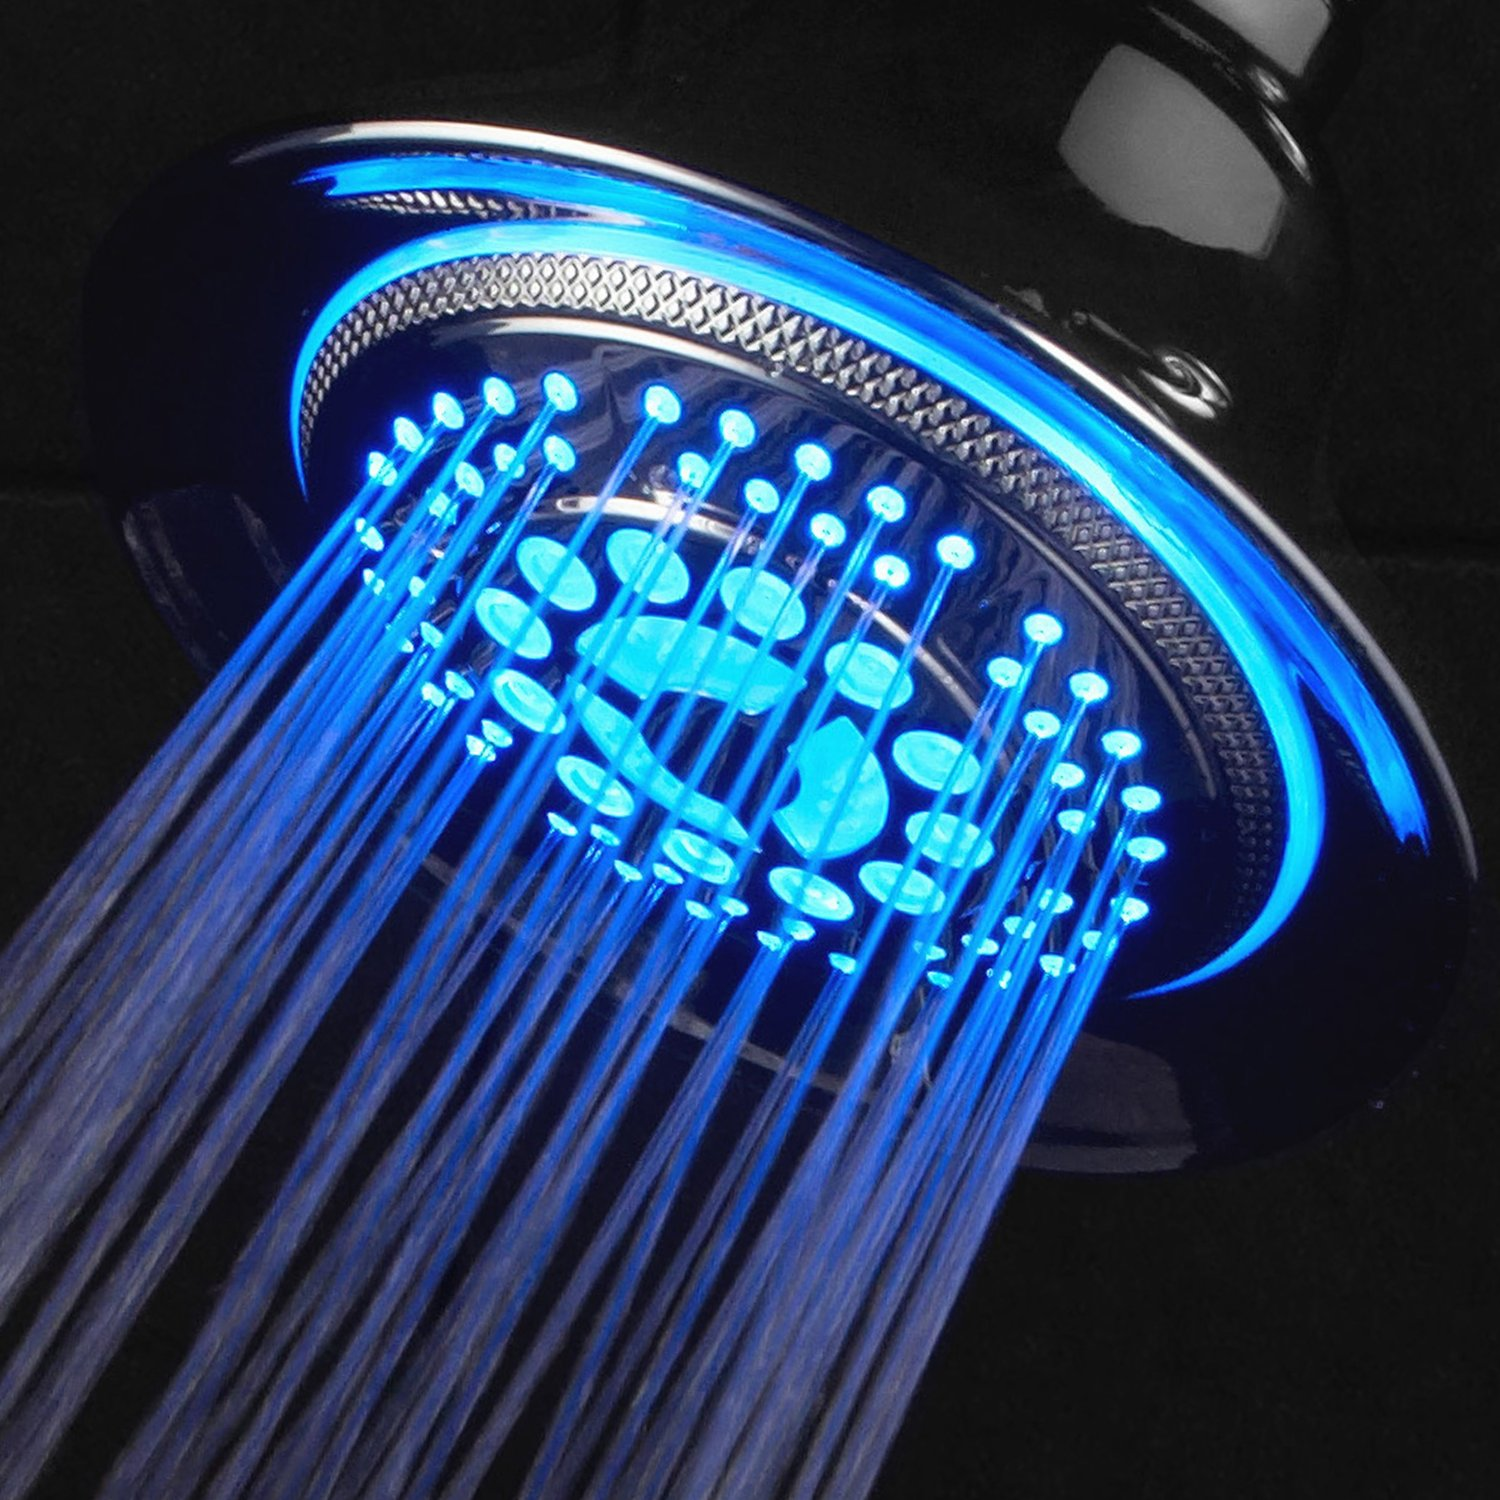 Amazon Best Sellers in fixed showerheads: See China alternatives